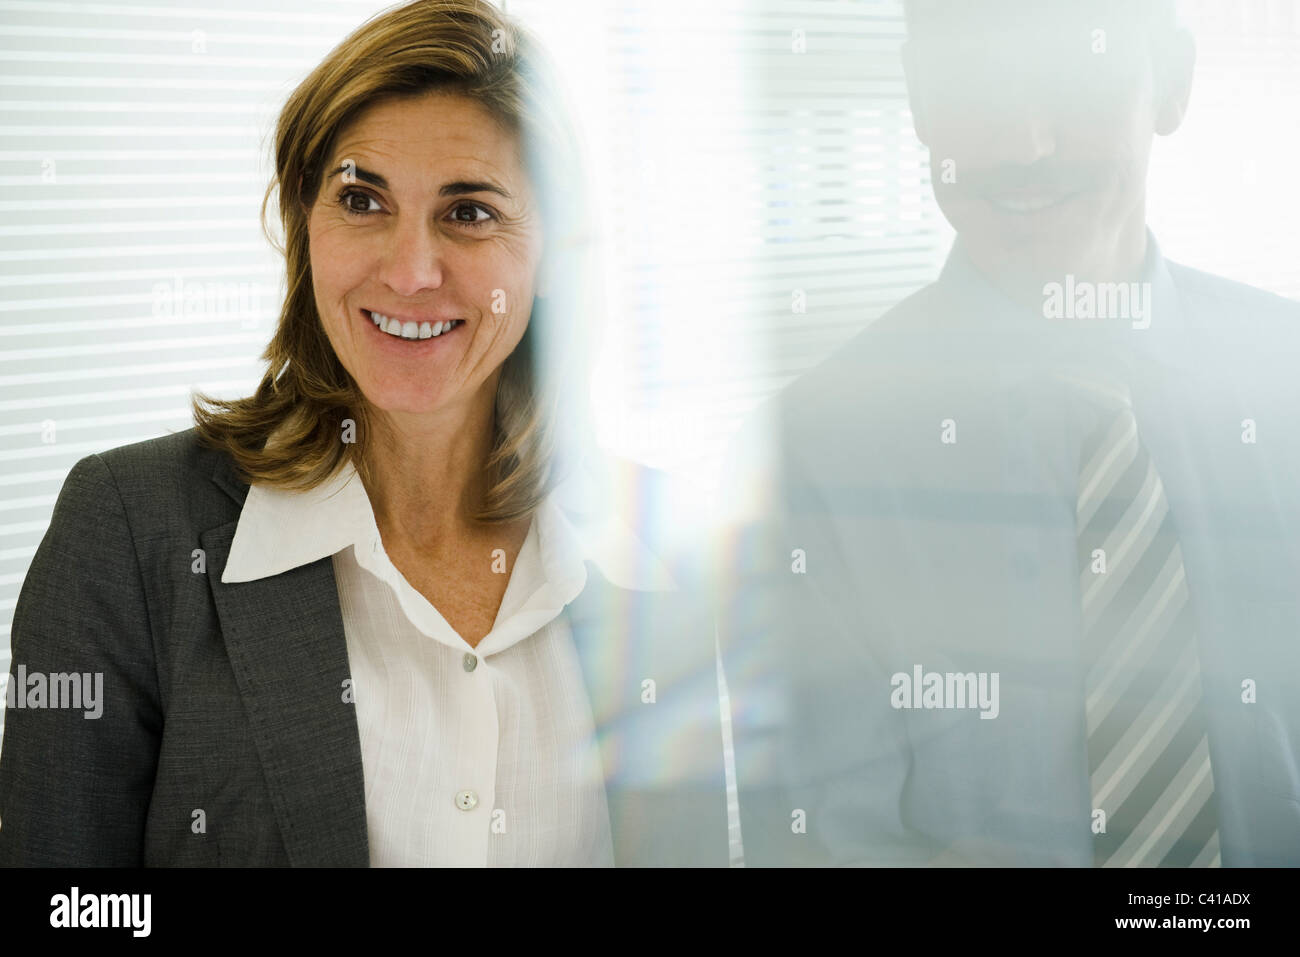 Smiling businesswoman looking away, businessman behind glass wall - Stock Image